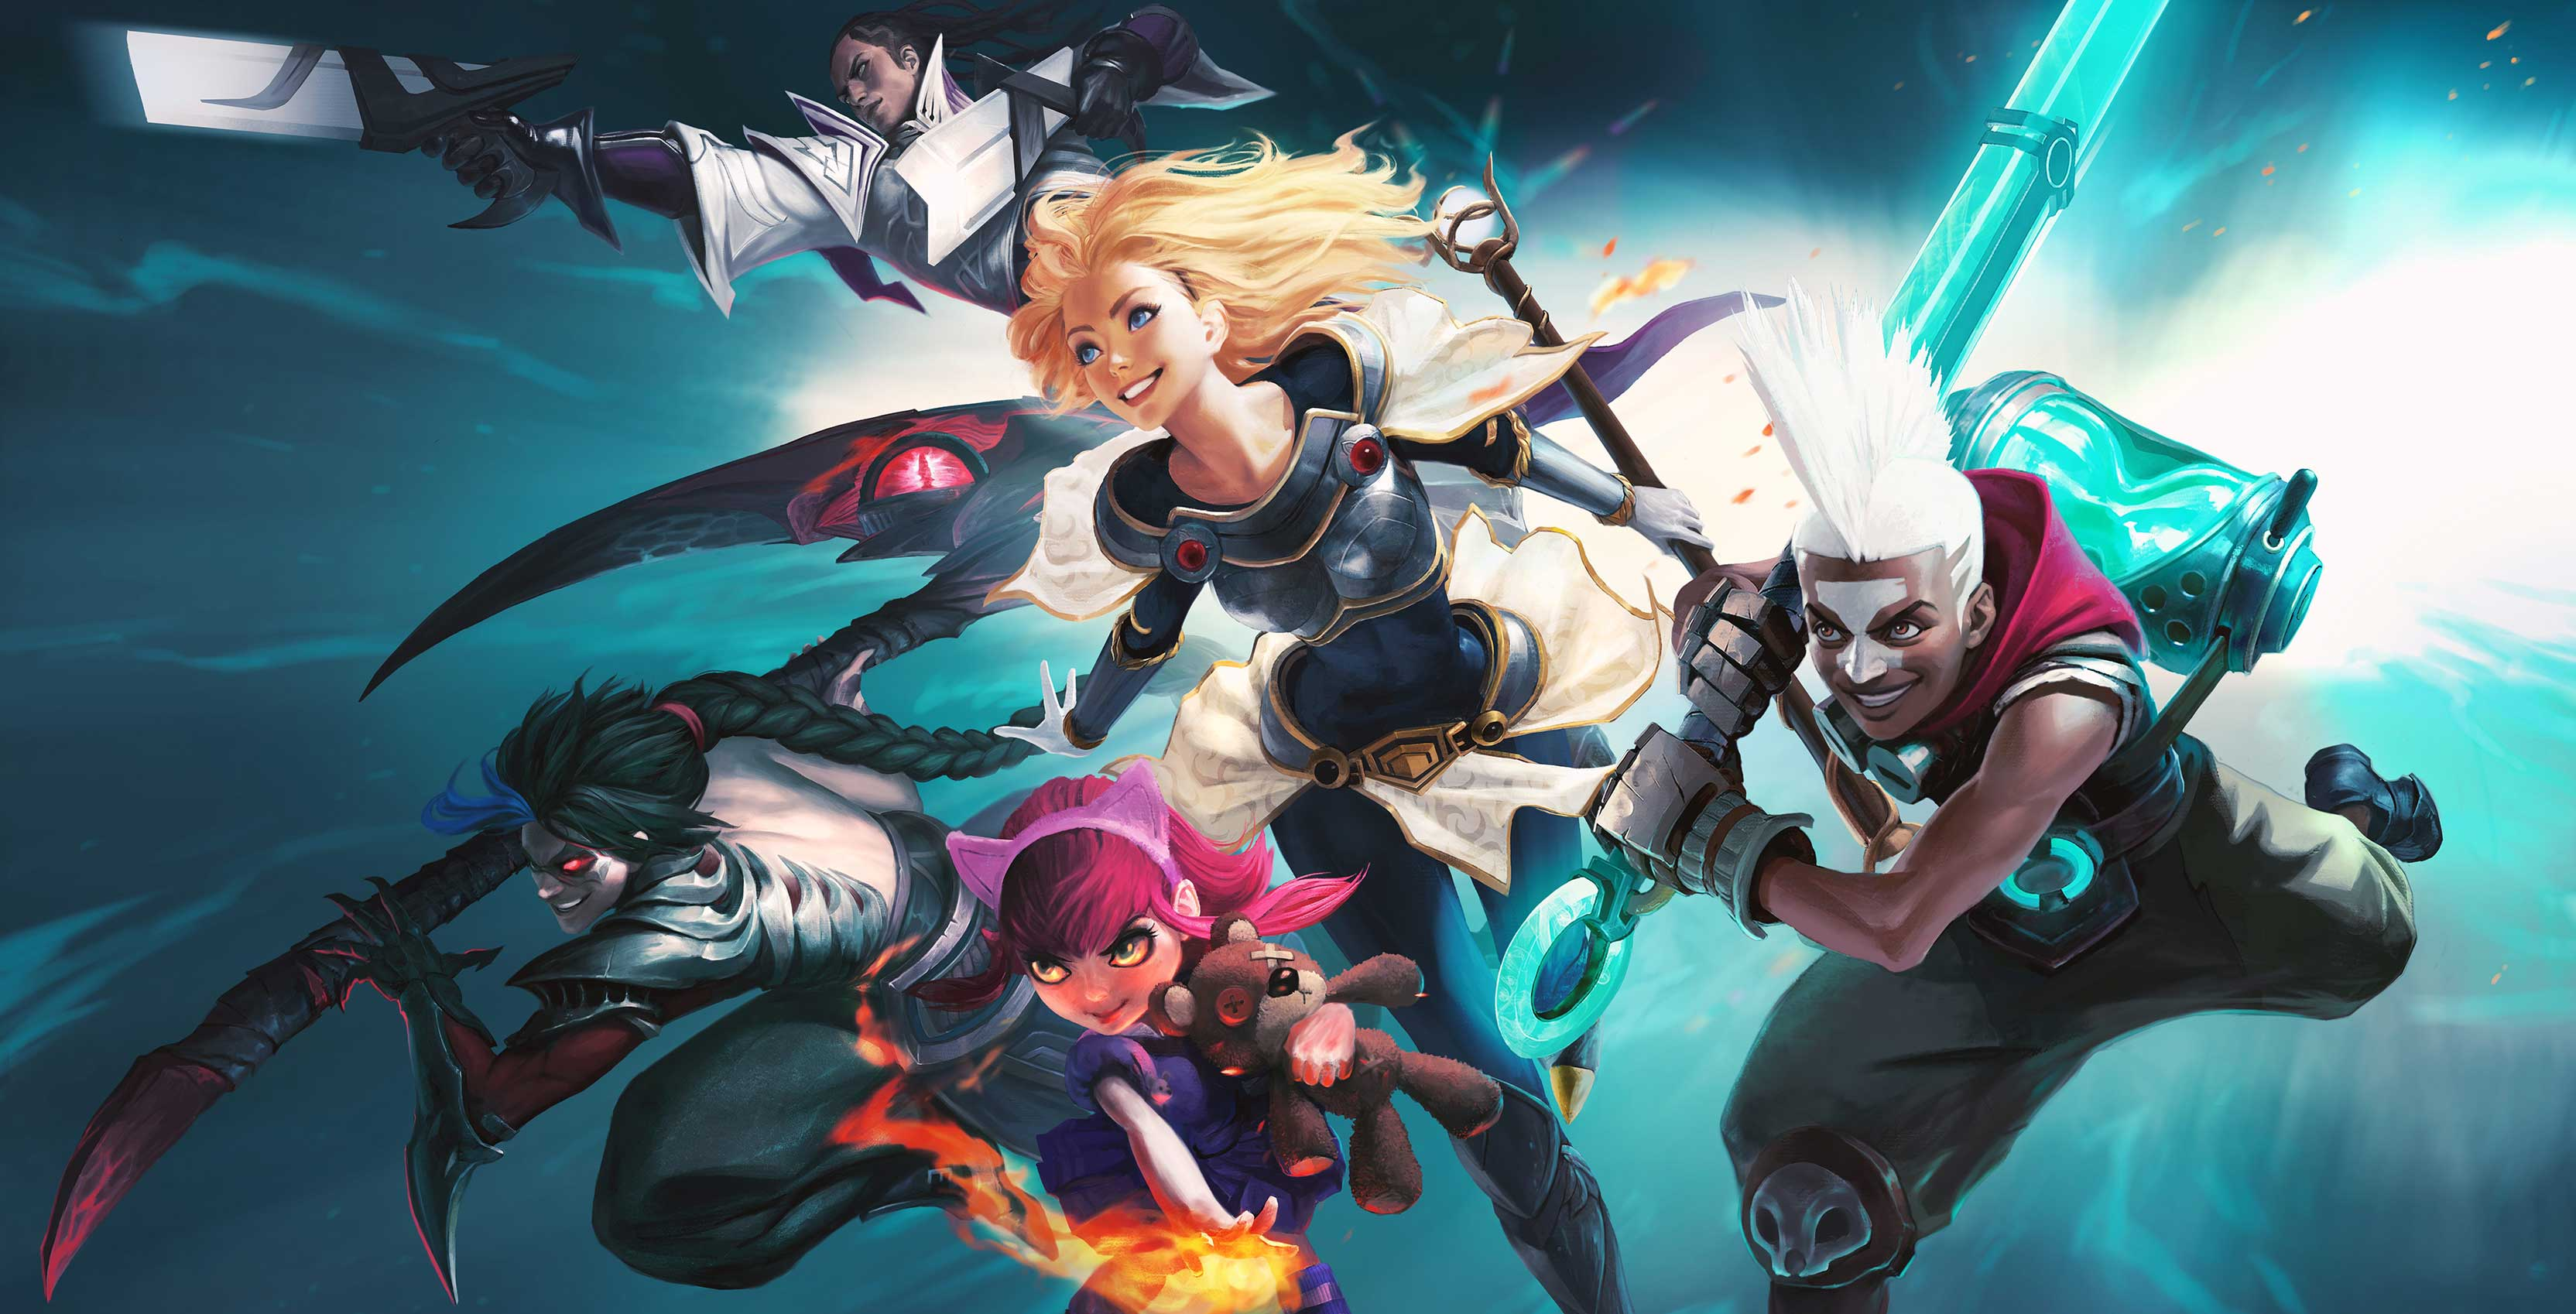 League of Legends character art